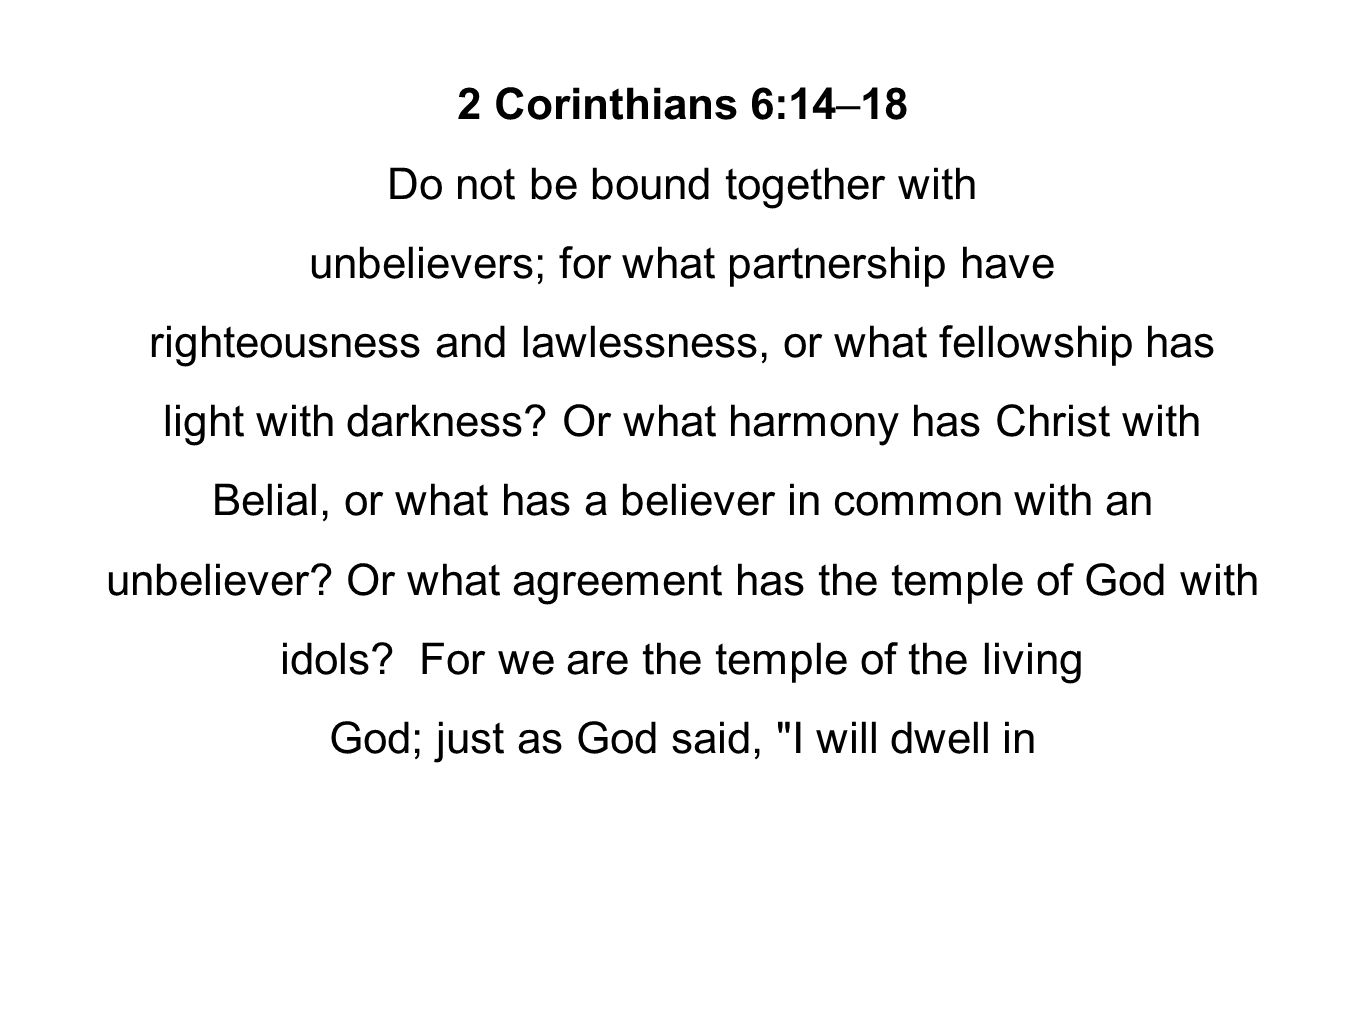 2 Corinthians 6:14–18 Do not be bound together with unbelievers; for what partnership have righteousness and lawlessness, or what fellowship has light